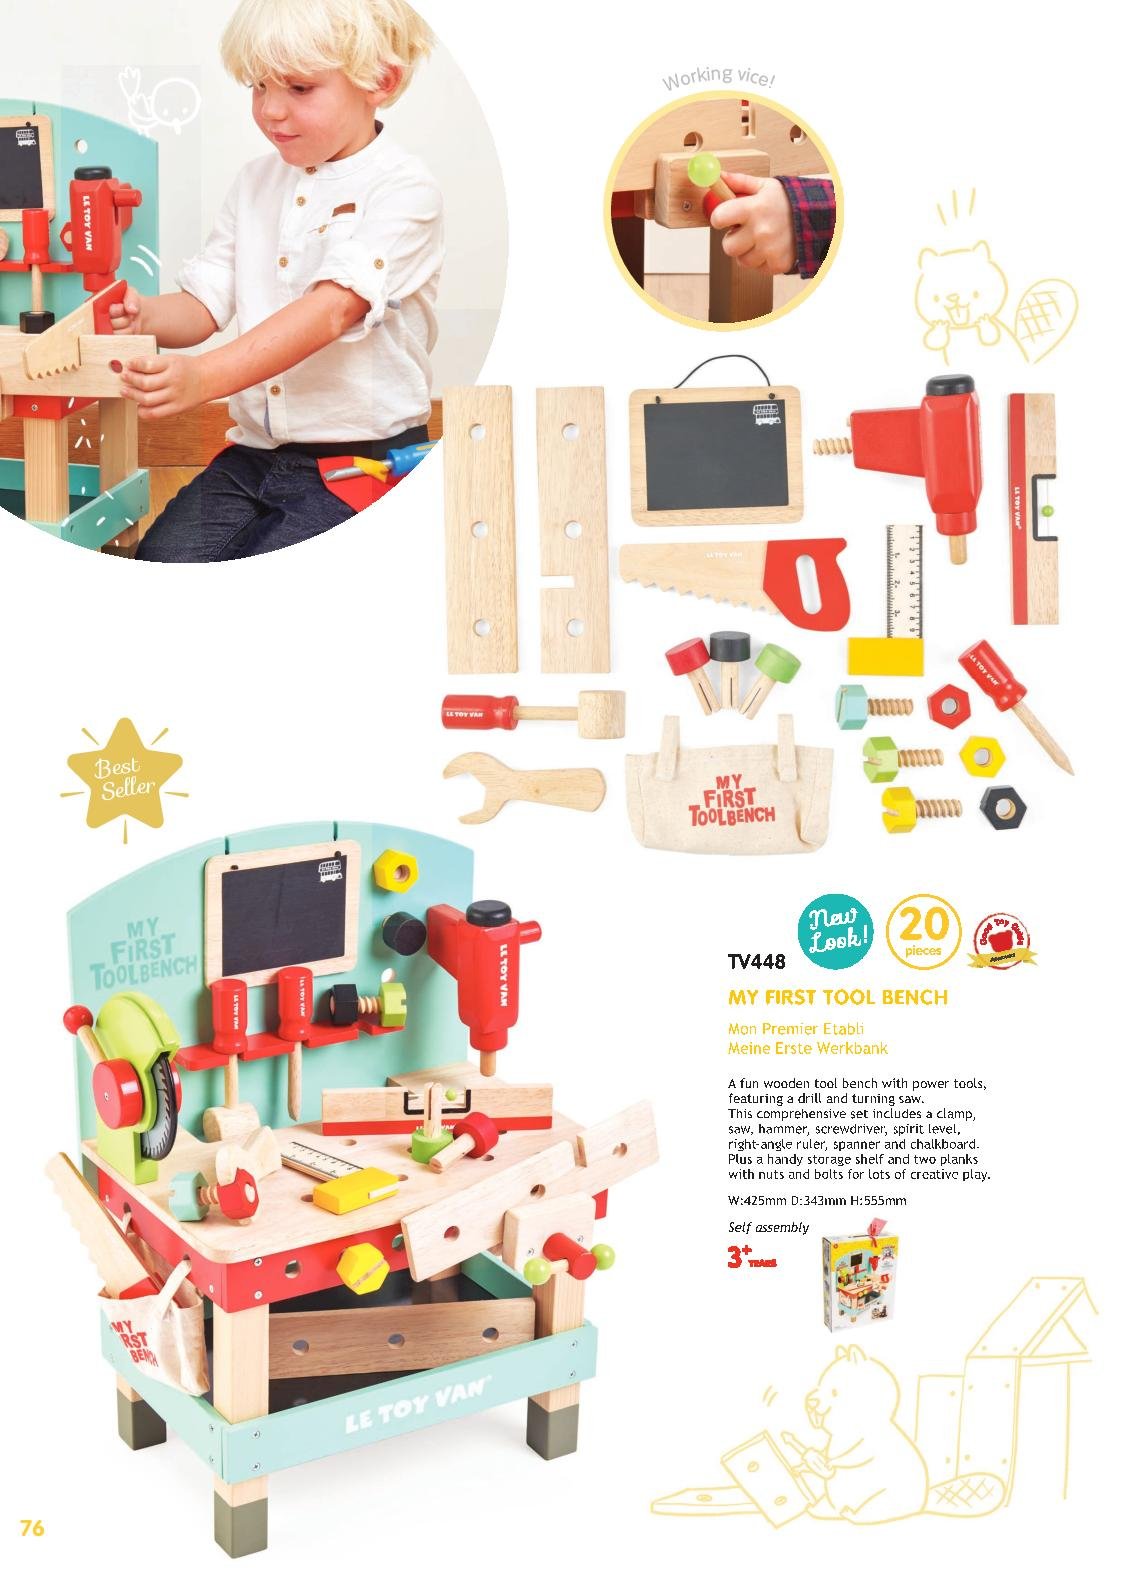 Magnificent Le Toy Van Collection 2019 Calameo Downloader Gamerscity Chair Design For Home Gamerscityorg